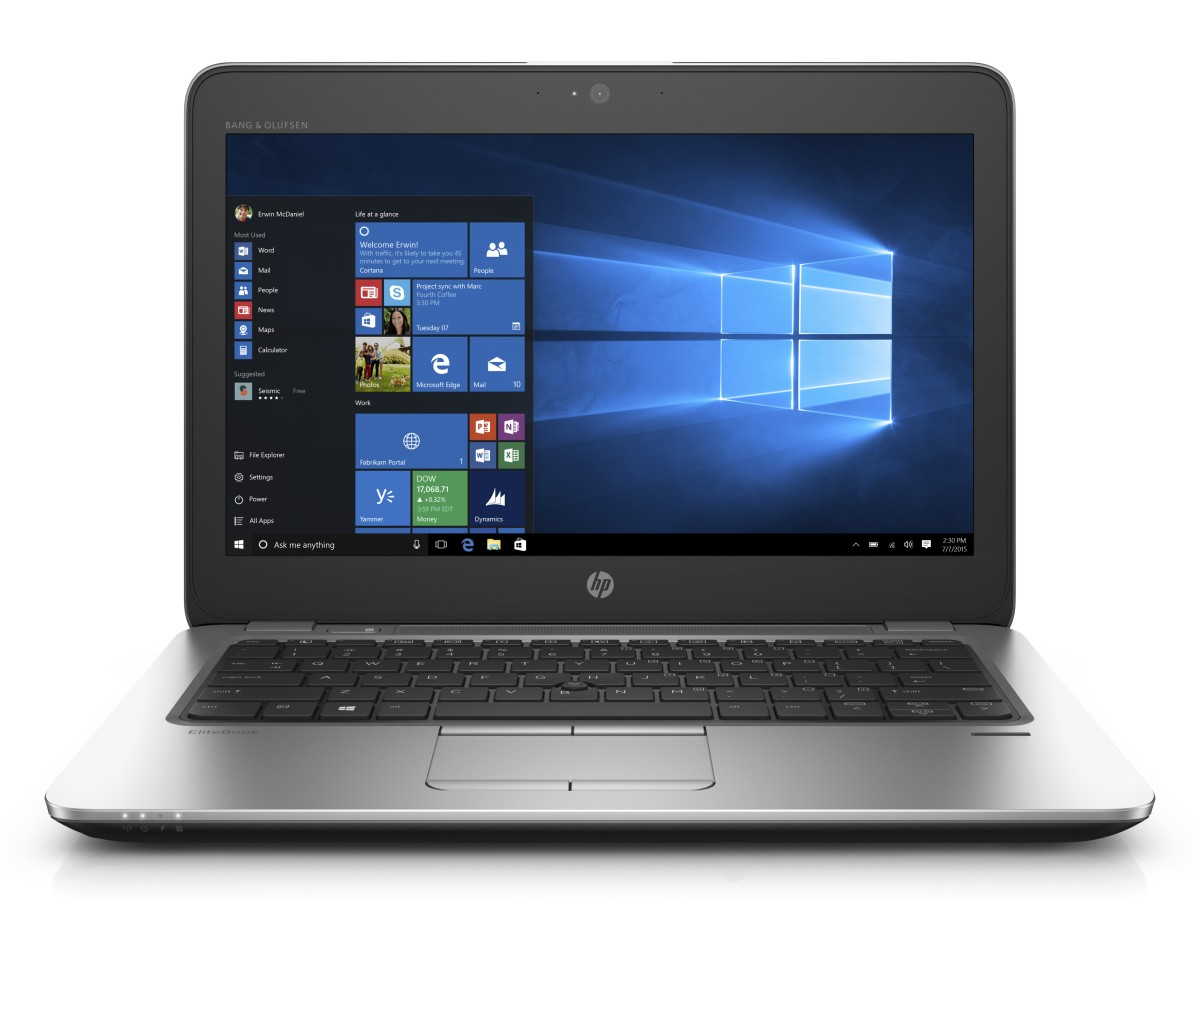 "HP EliteBook 820 G4 i7-7500U/8GB/512GB SSD TurboG2/12.5"" FHD/ backlit keyb /Win 10 Pro"